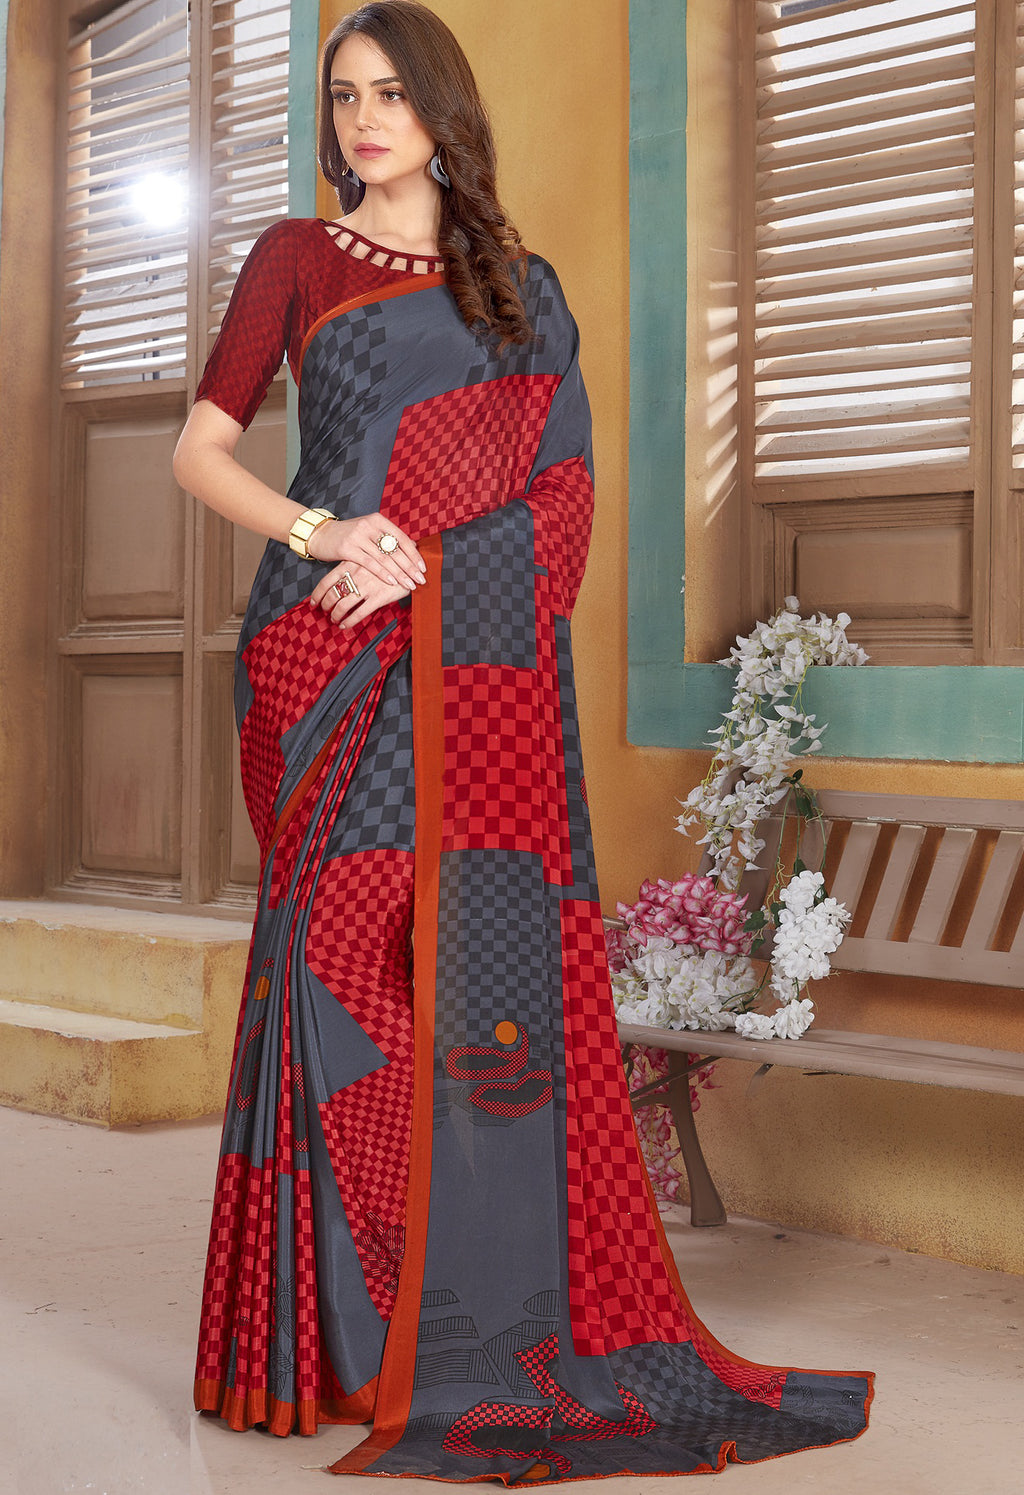 Grey & Red Color Crepe Kitty Party Sarees NYF-8821